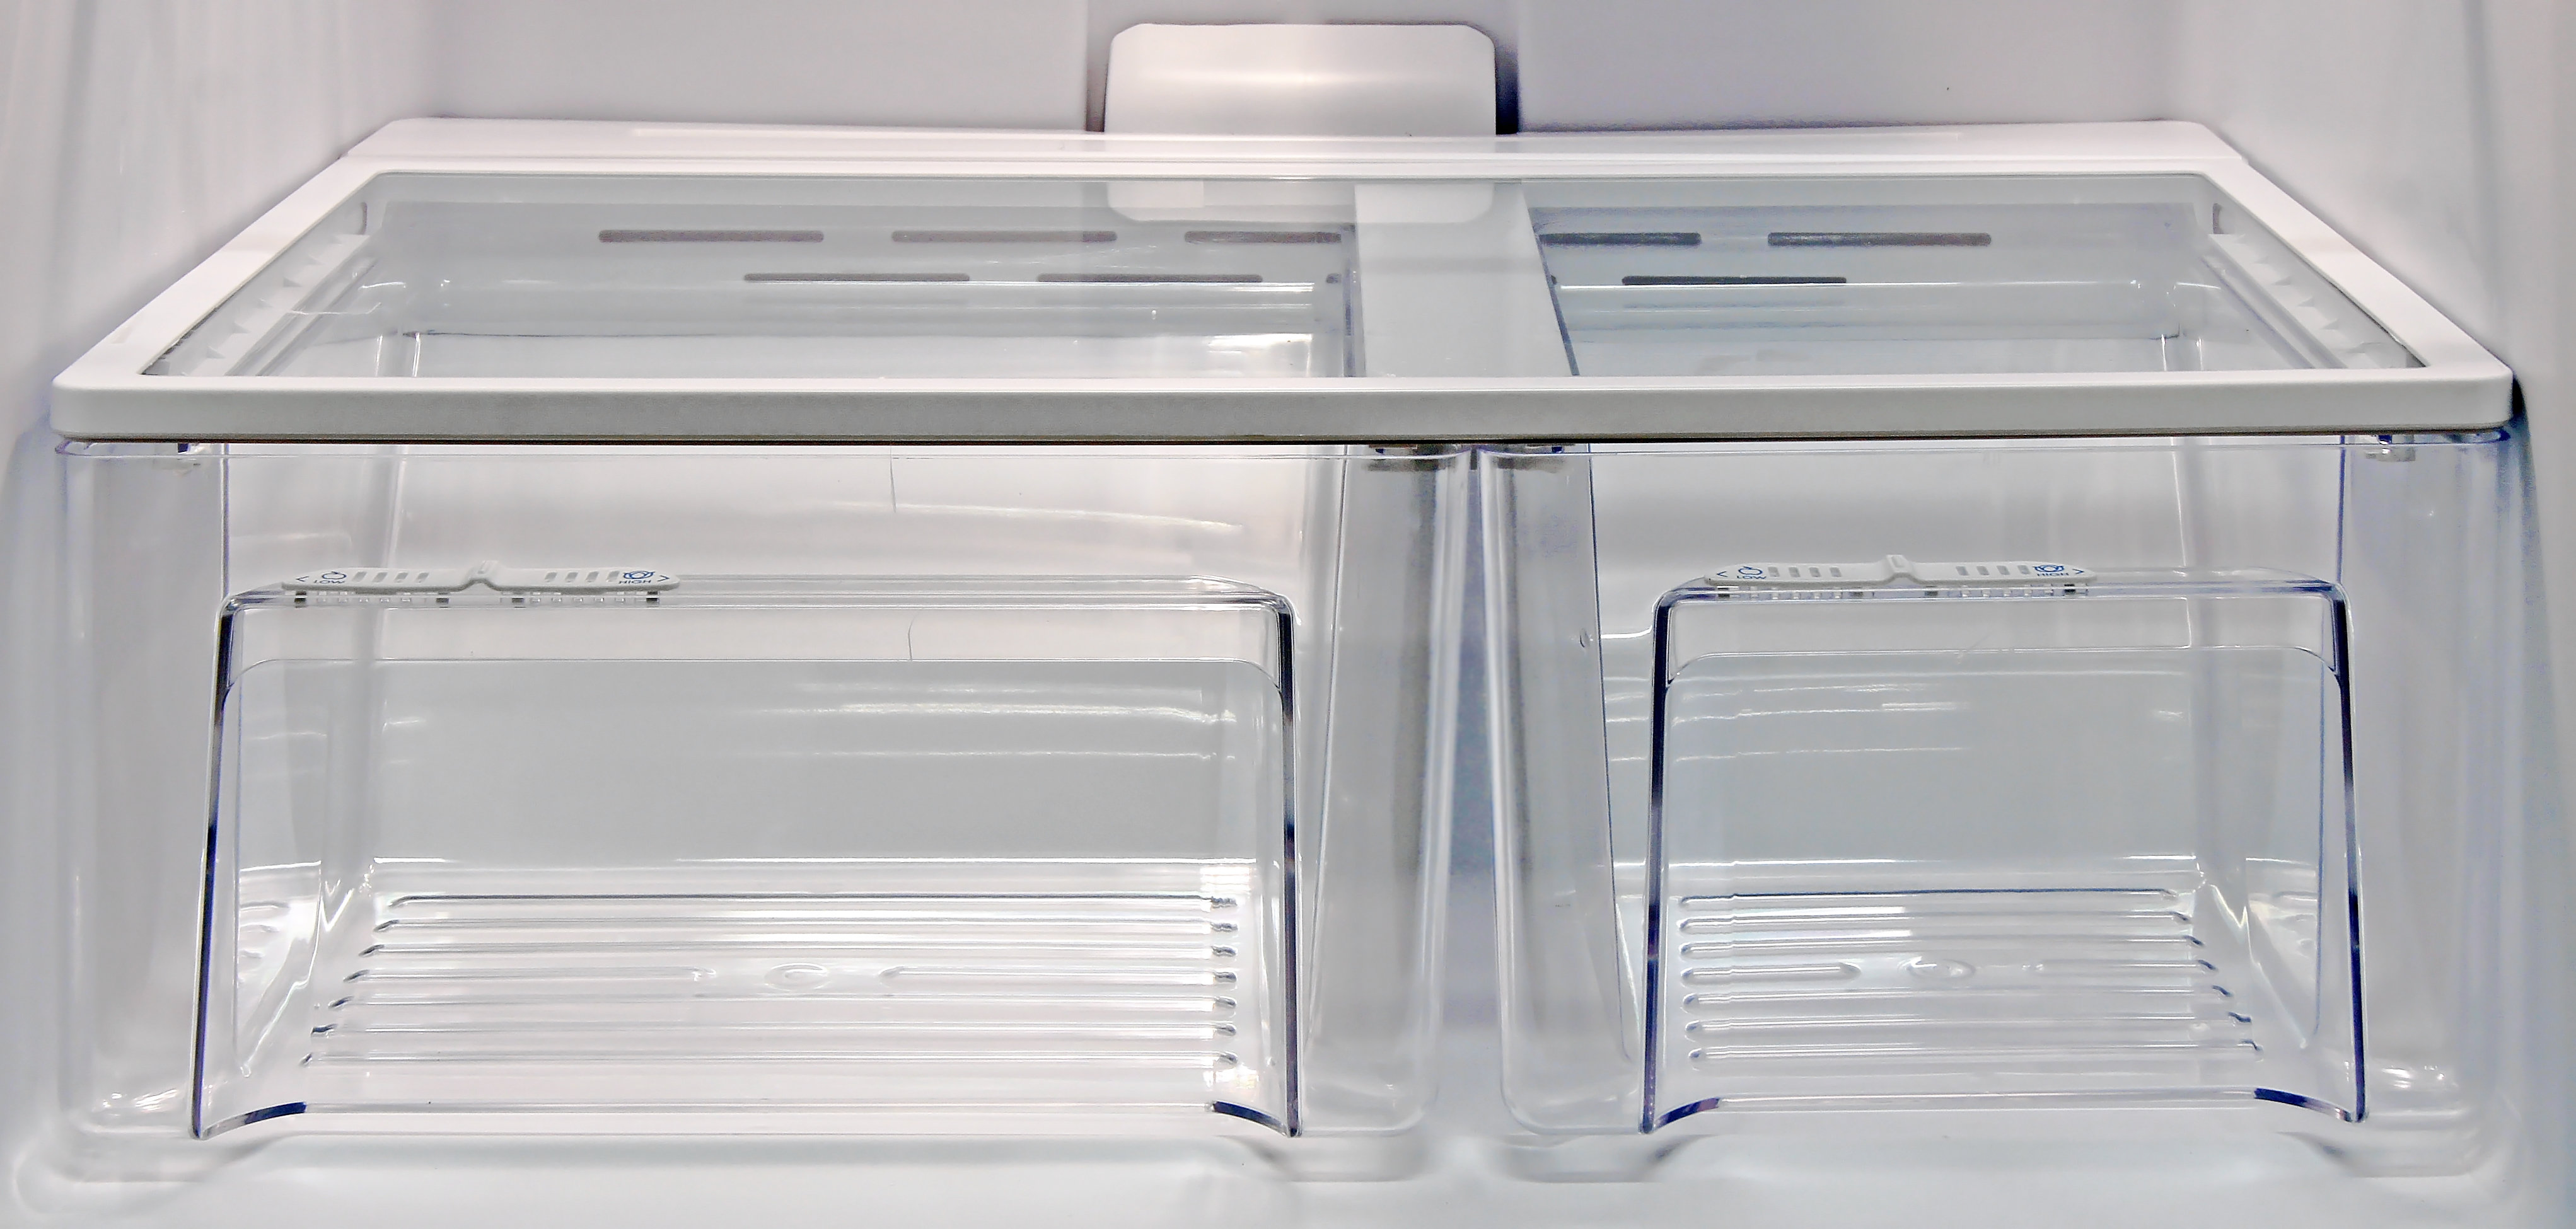 The Kenmore 72152's two asymmetrical crispers work very well.